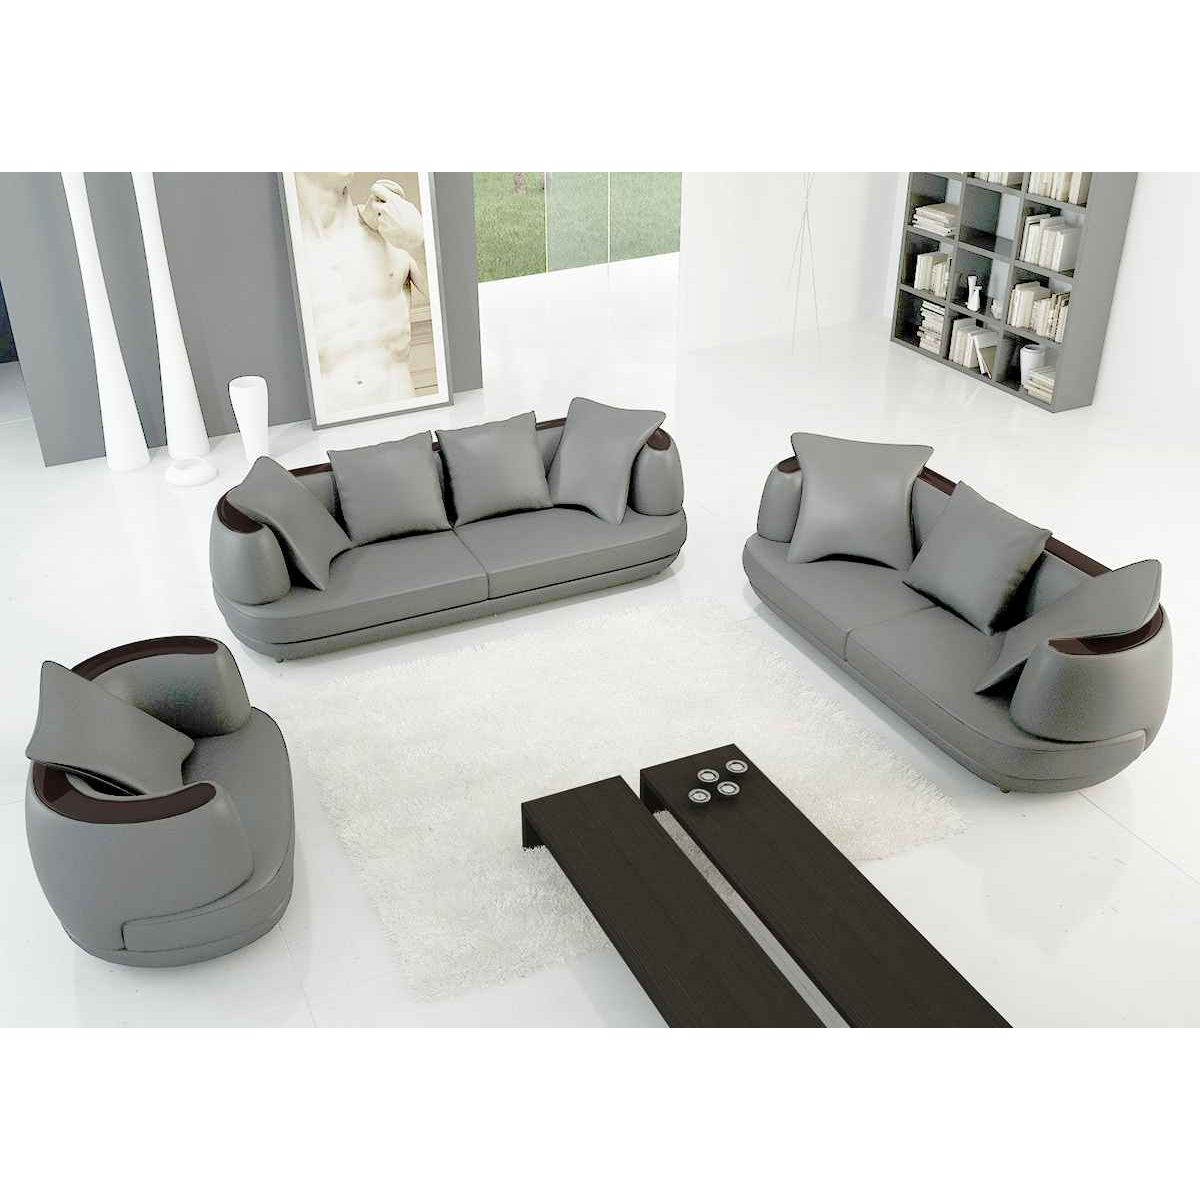 deco in paris ensemble canape 3 2 1 places en cuir gris. Black Bedroom Furniture Sets. Home Design Ideas